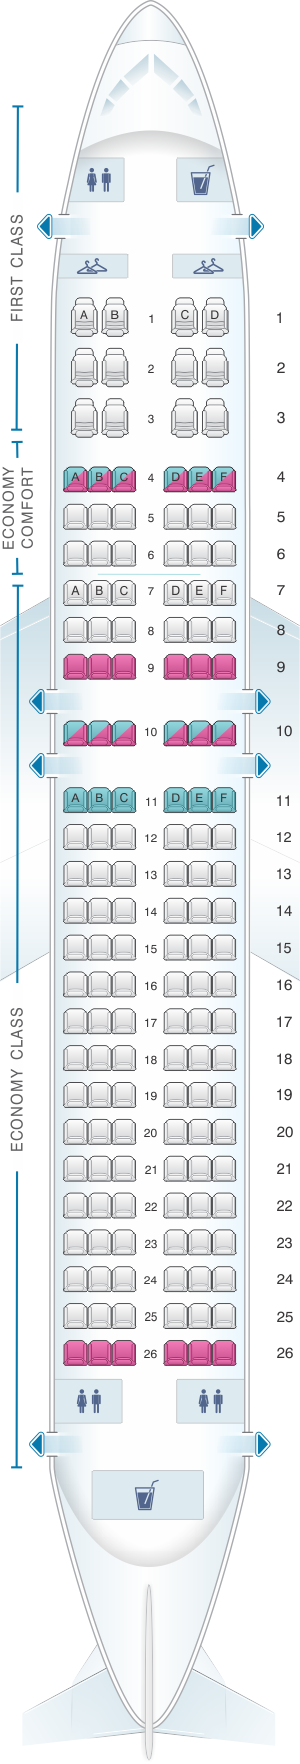 Seat map for Delta Airlines Airbus A320 200 (320/32R)